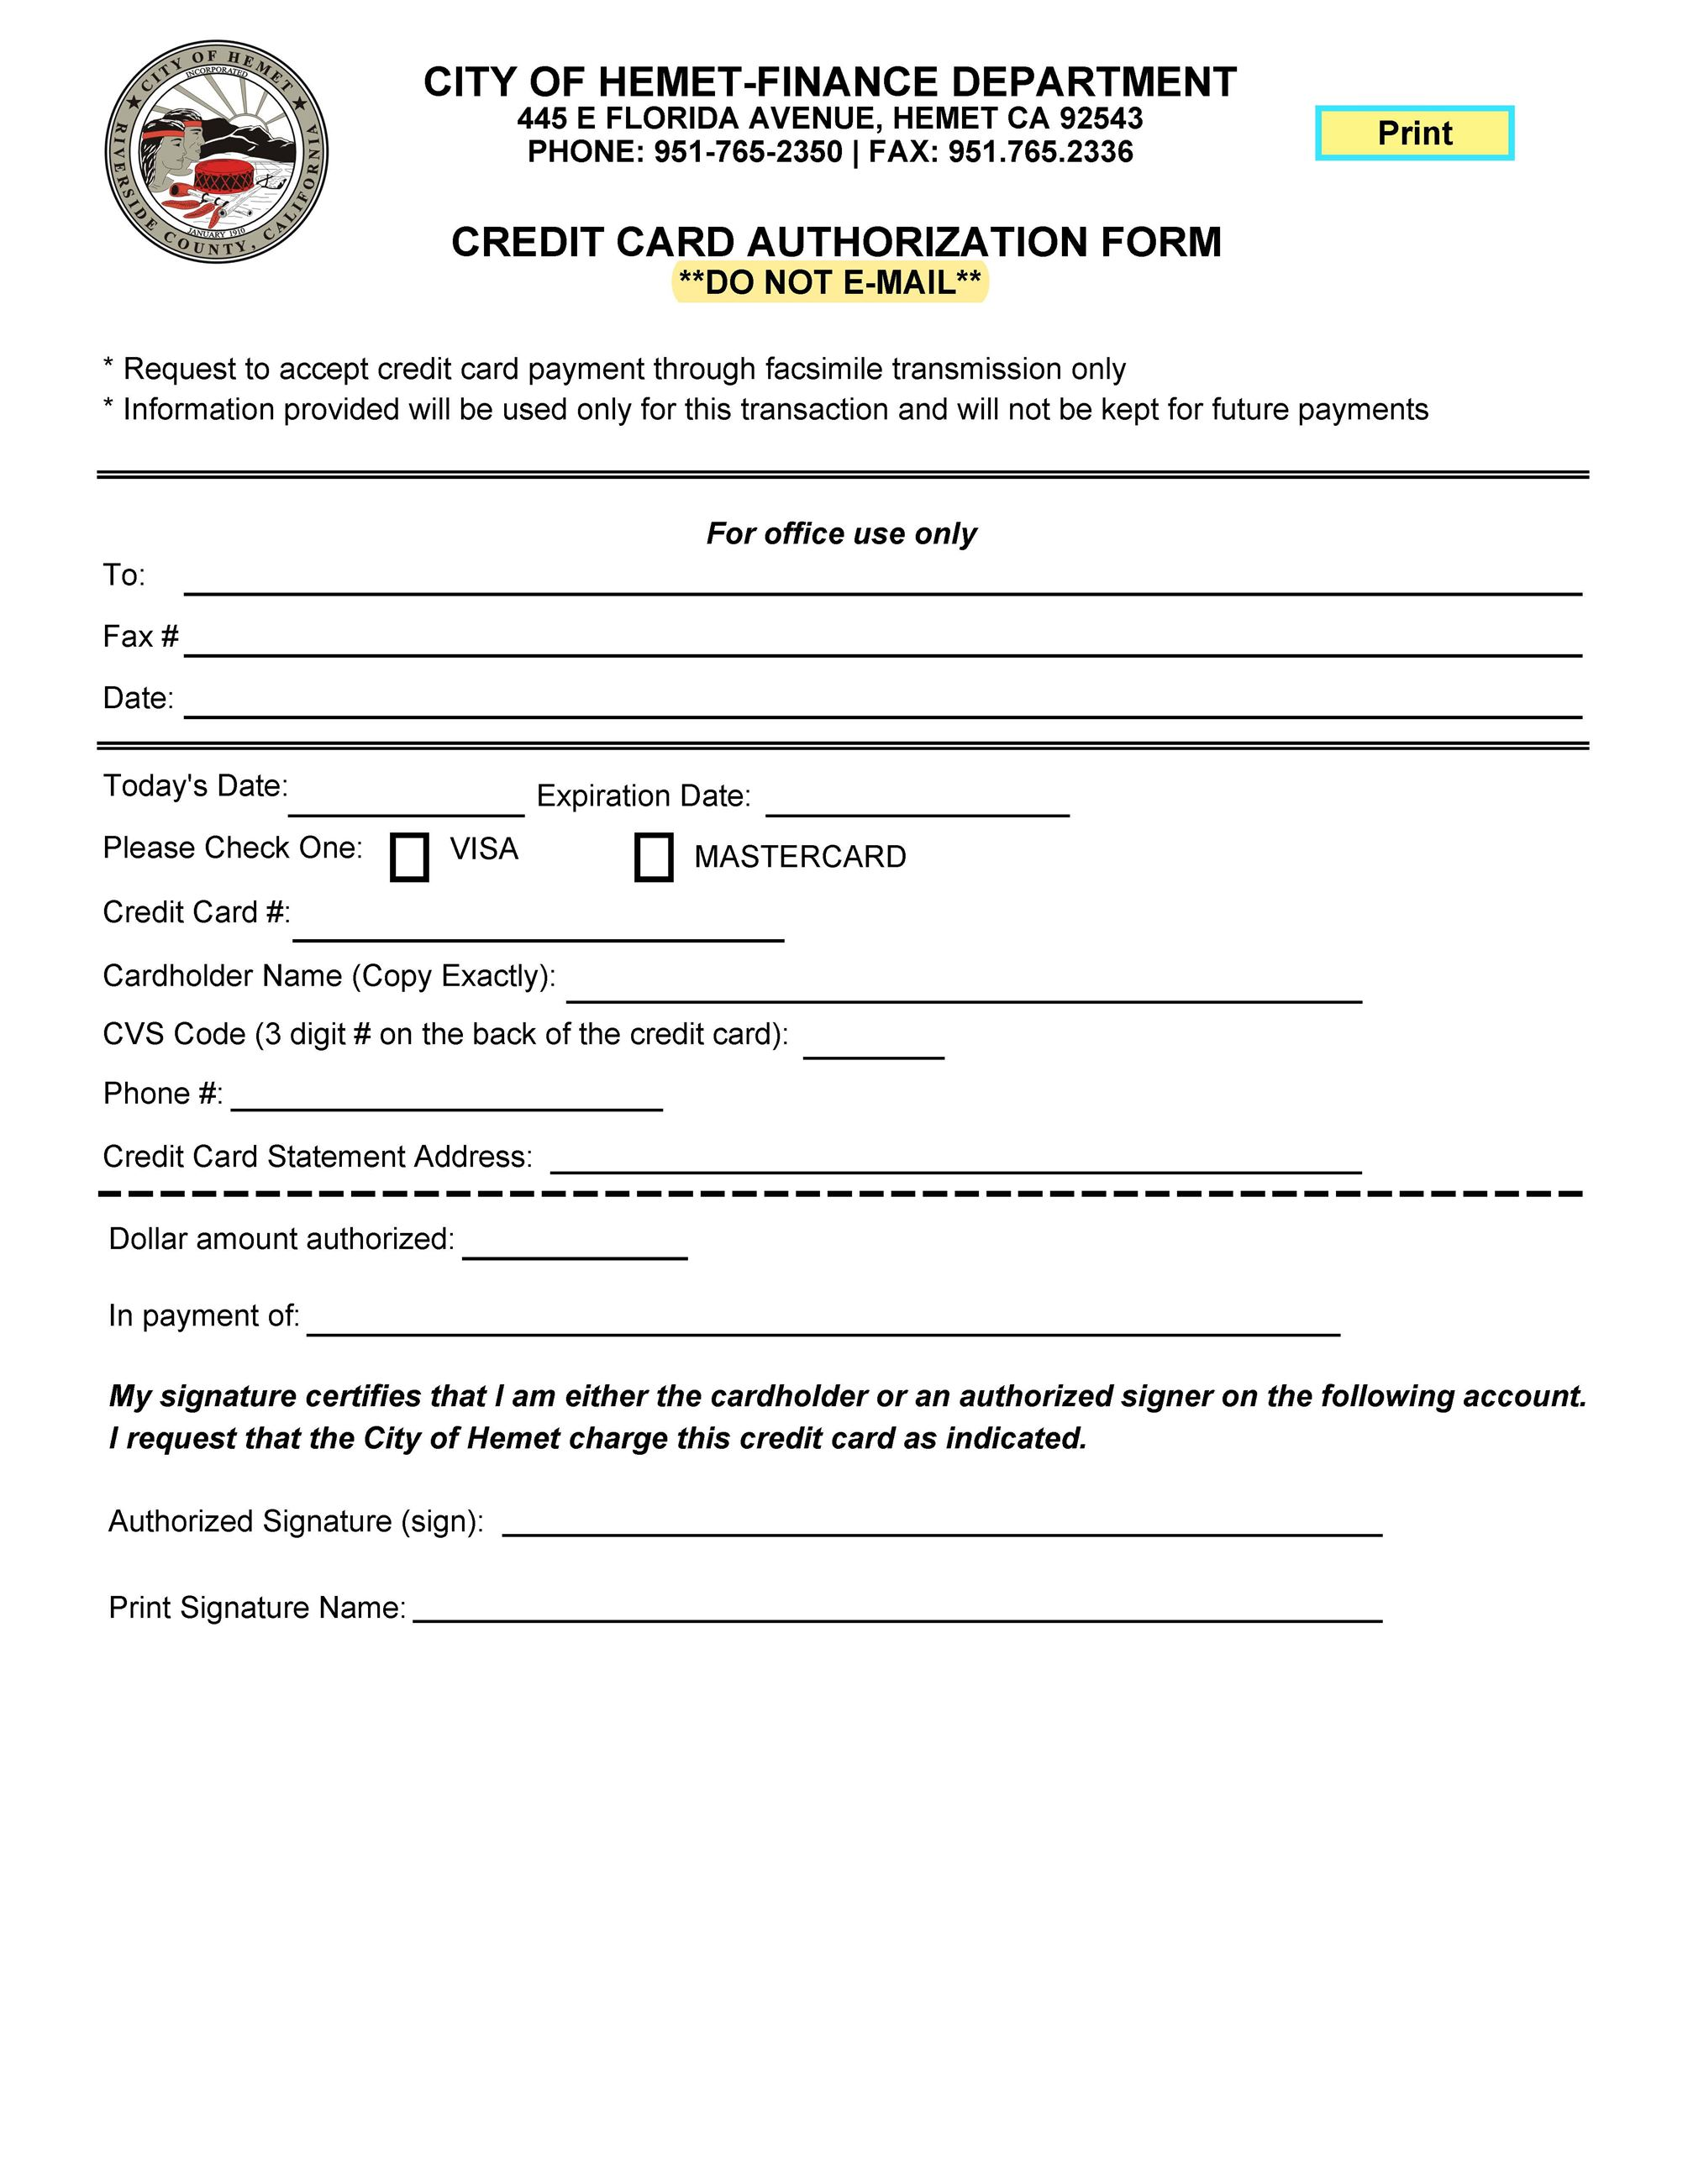 FAX_CREDIT CARD AUTHORIZATION FORM_3-18-21